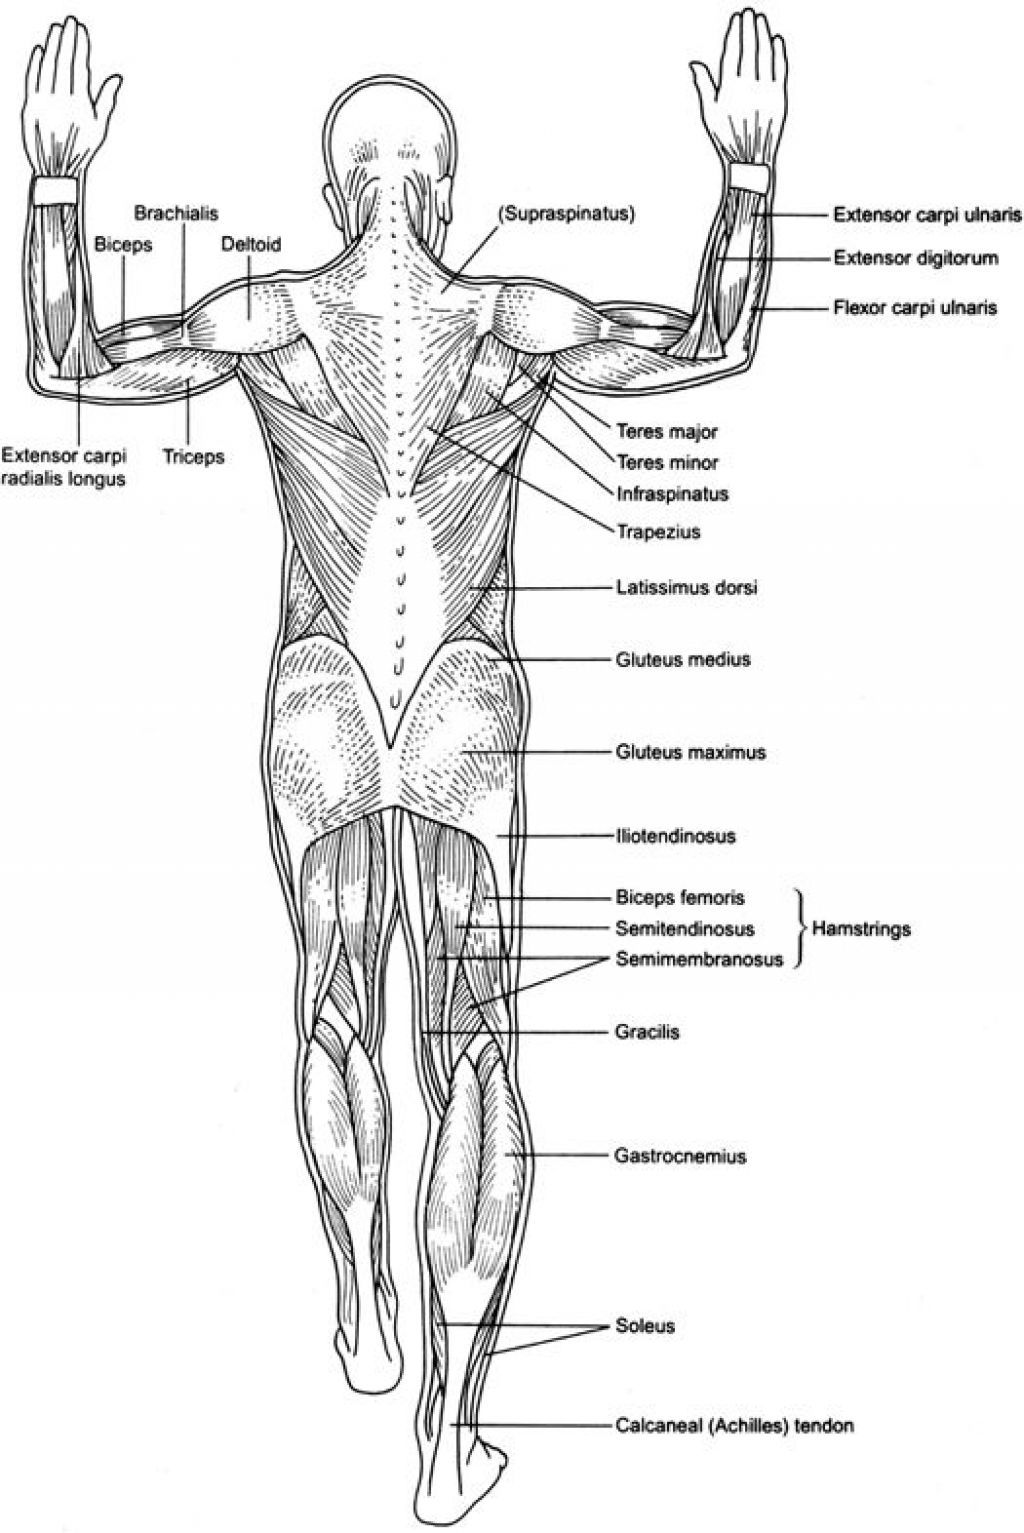 muscle-diagram-human-body-parts | human structure | pinterest, Muscles